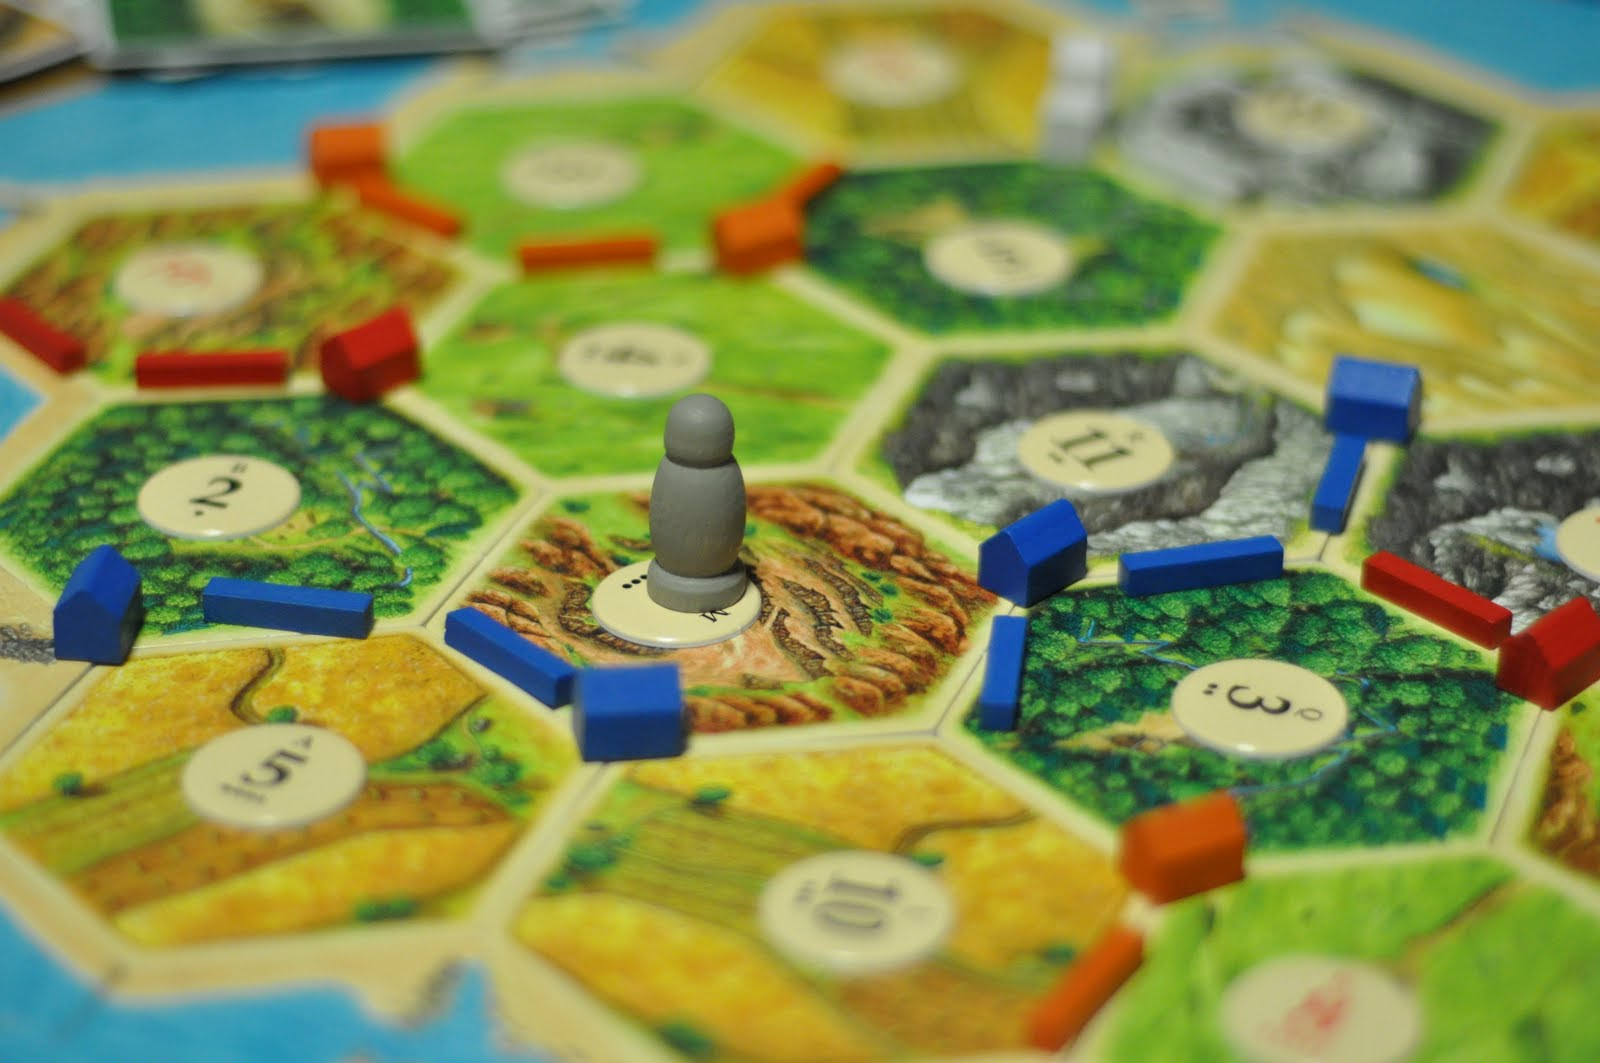 Top Board Games like Settlers of Catan - Dereeze